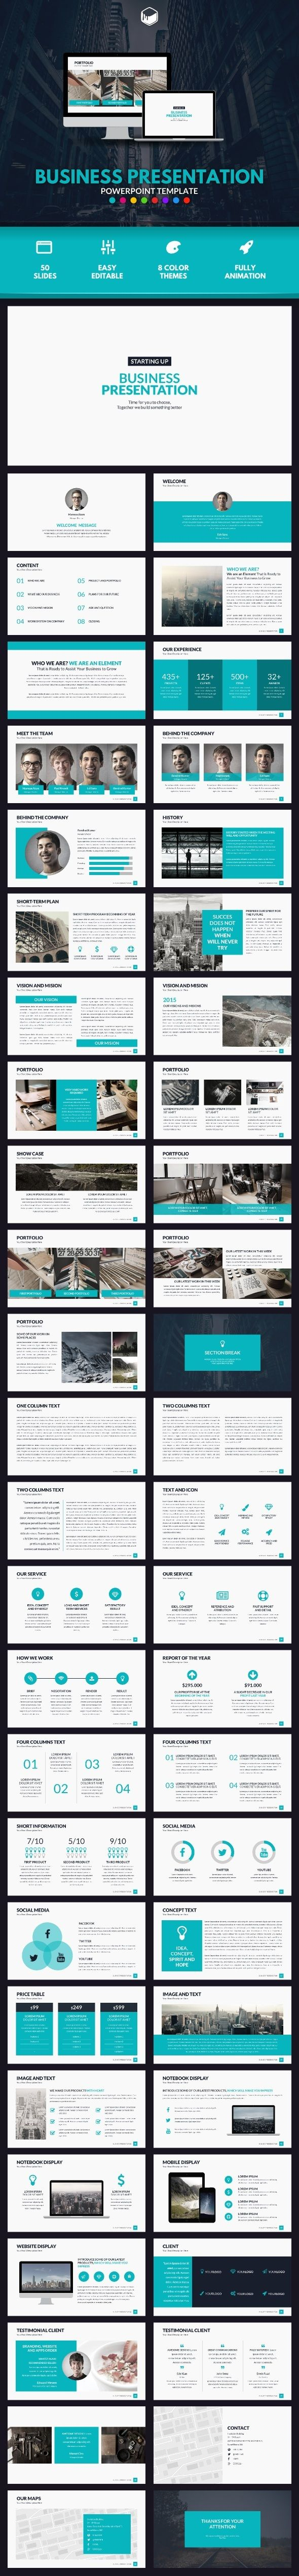 Business Presentation - PowerPoint Template #design #slides Download…